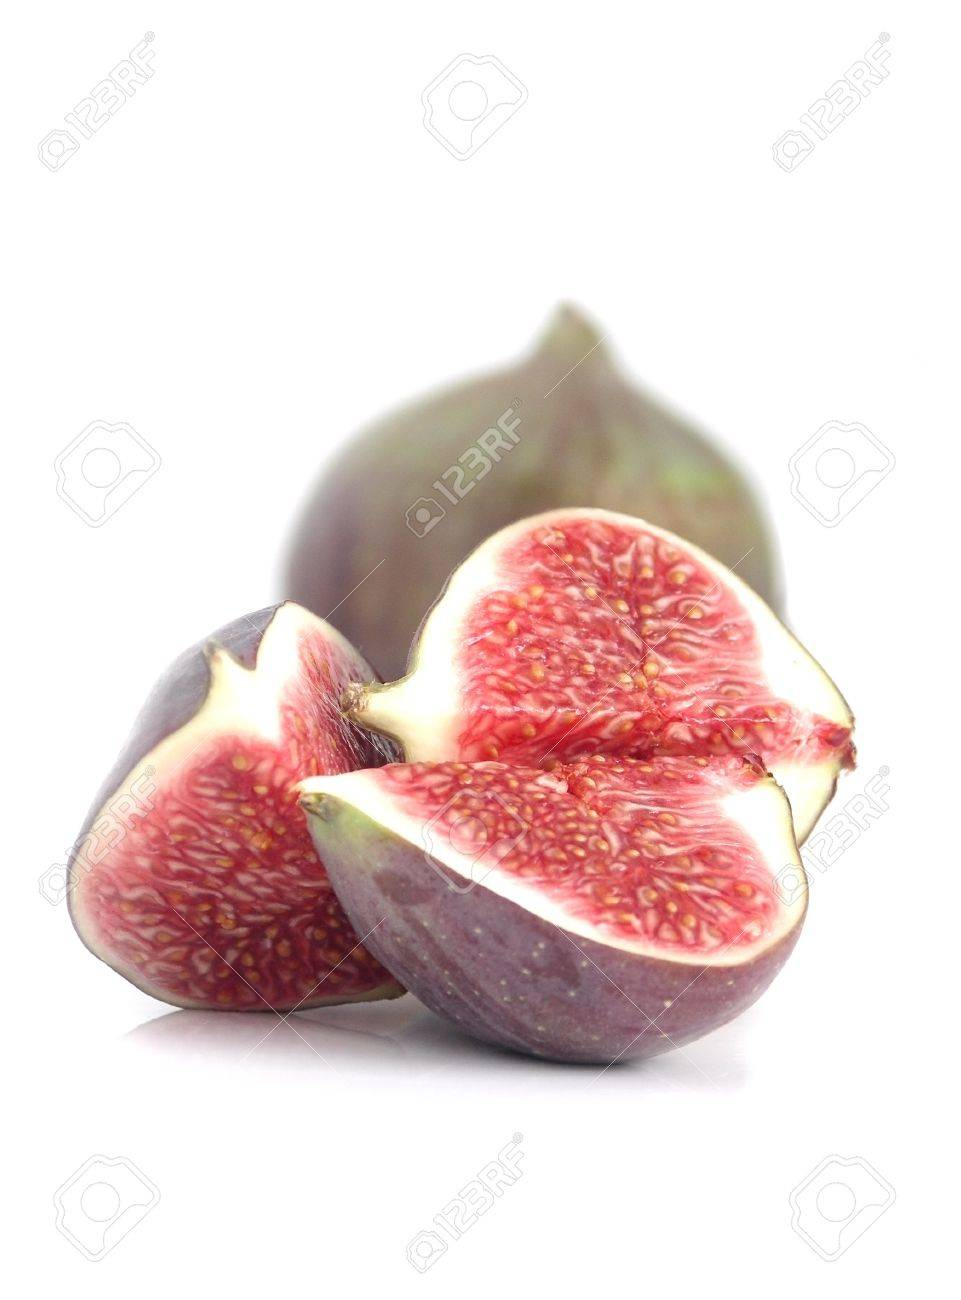 Fresh figs isolated on a white background Stock Photo - 9146522